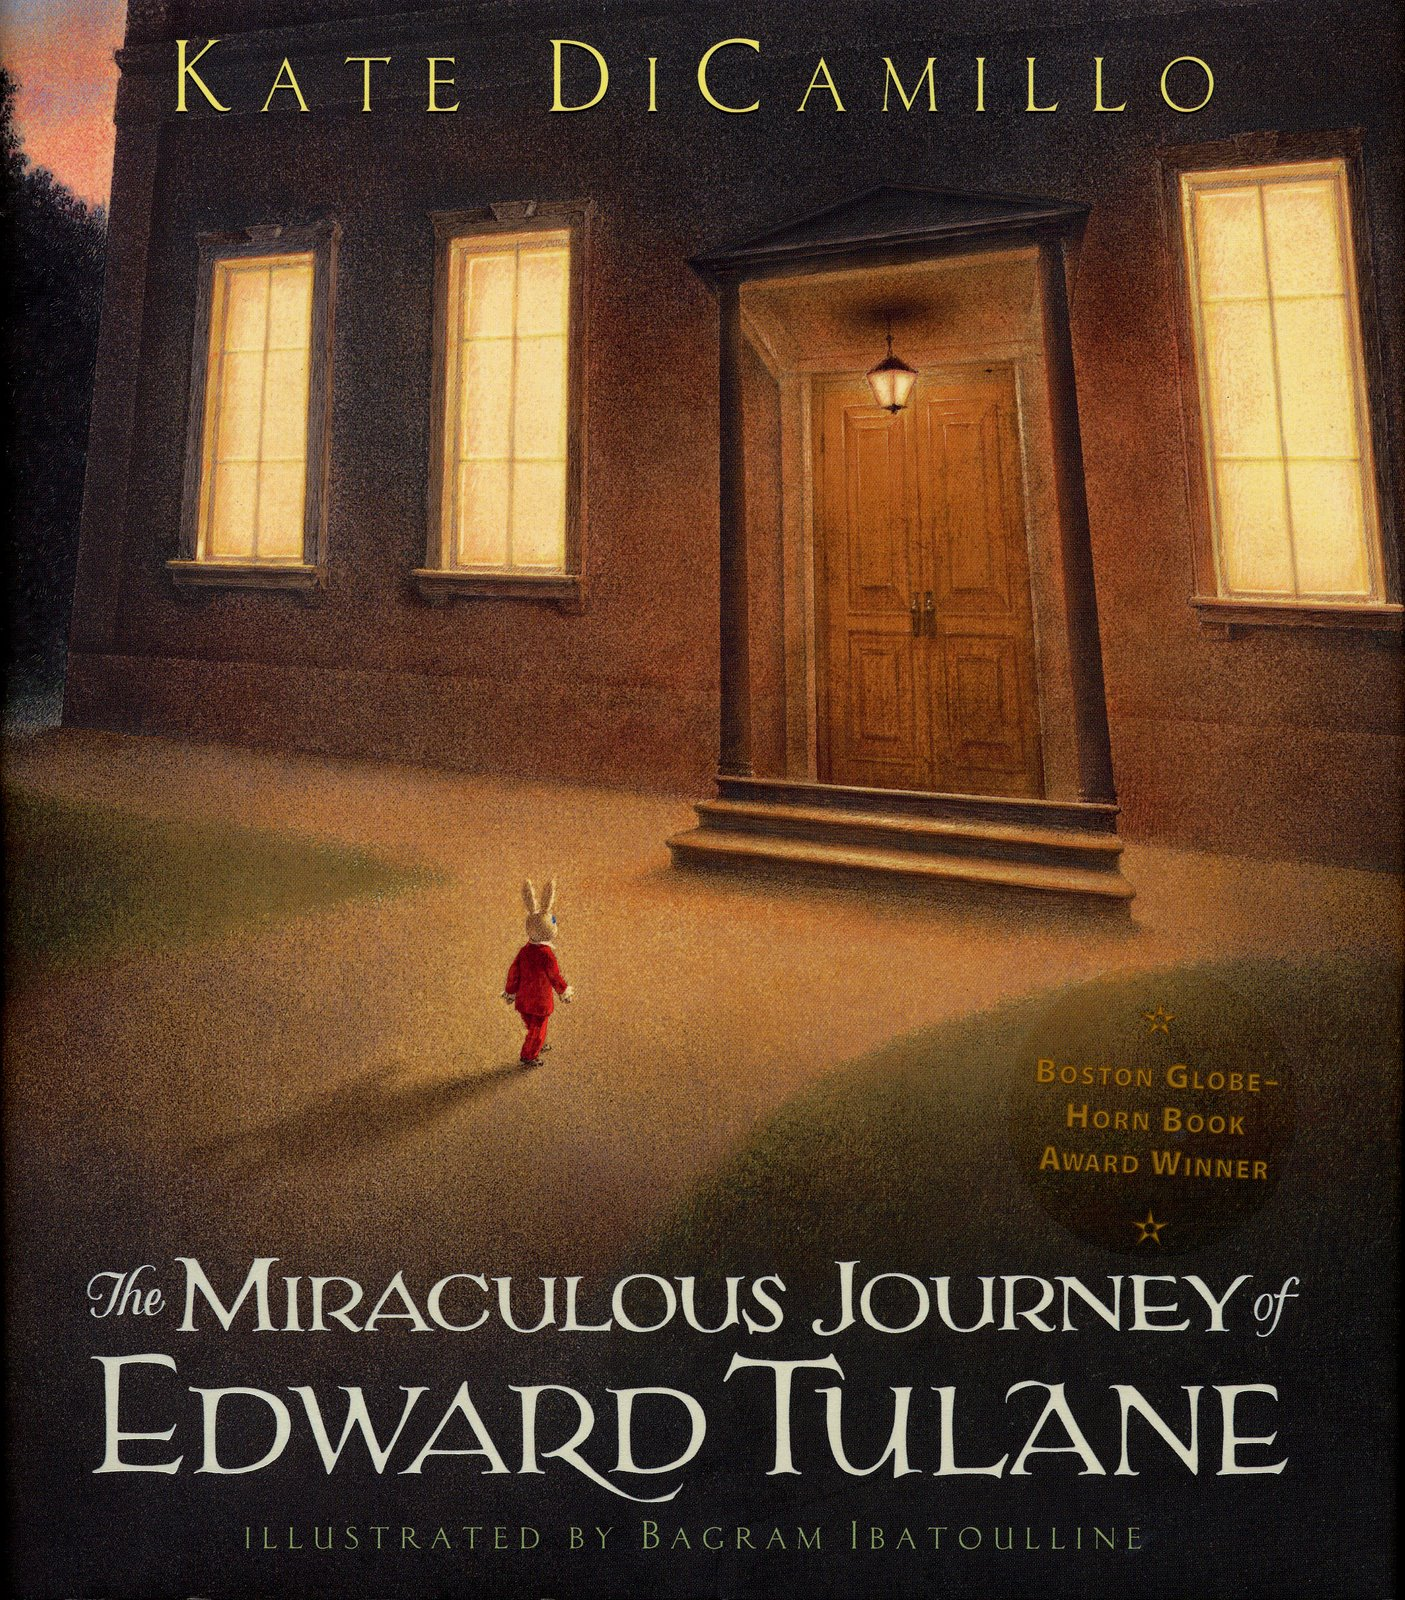 sparky u0026 39 s book nook  the miraculous journey of edward tulane